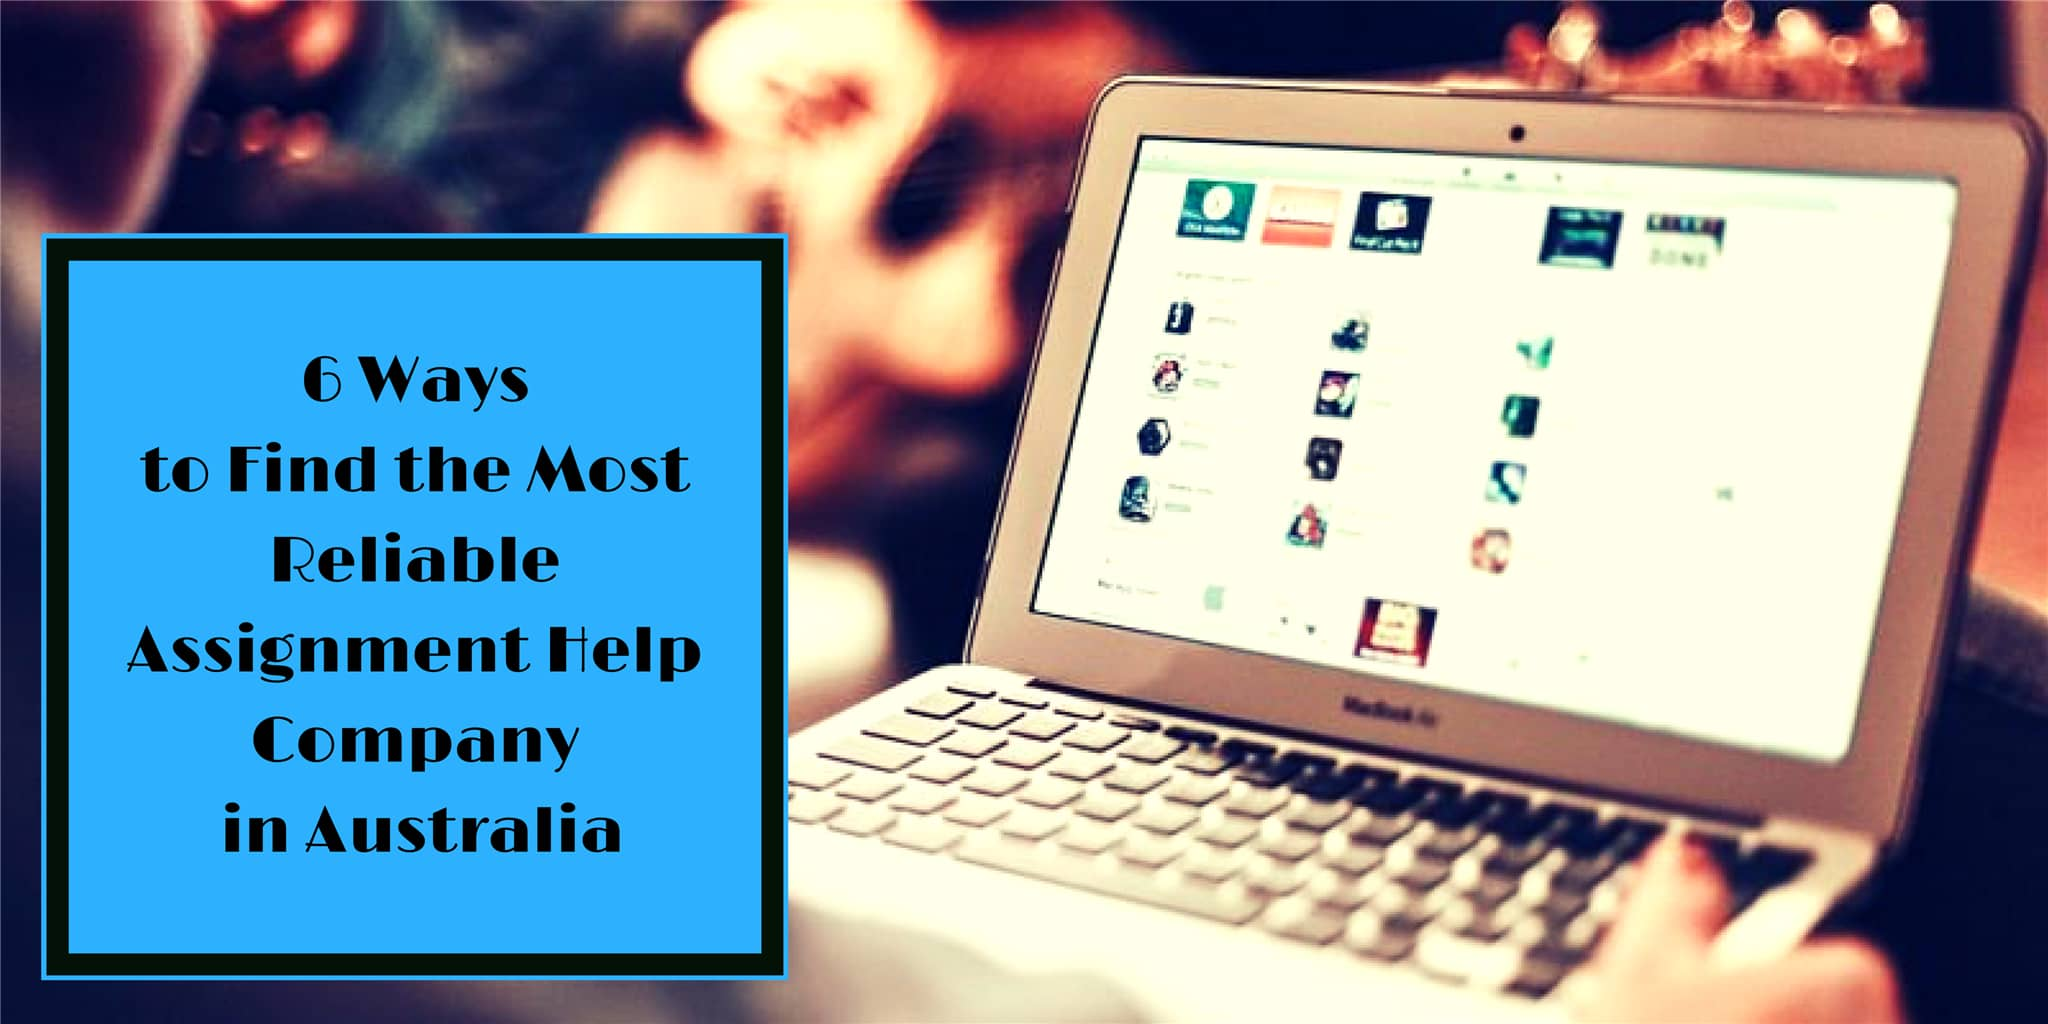 6 Ways to Find the Most Reliable Assignment Help Company in Australia